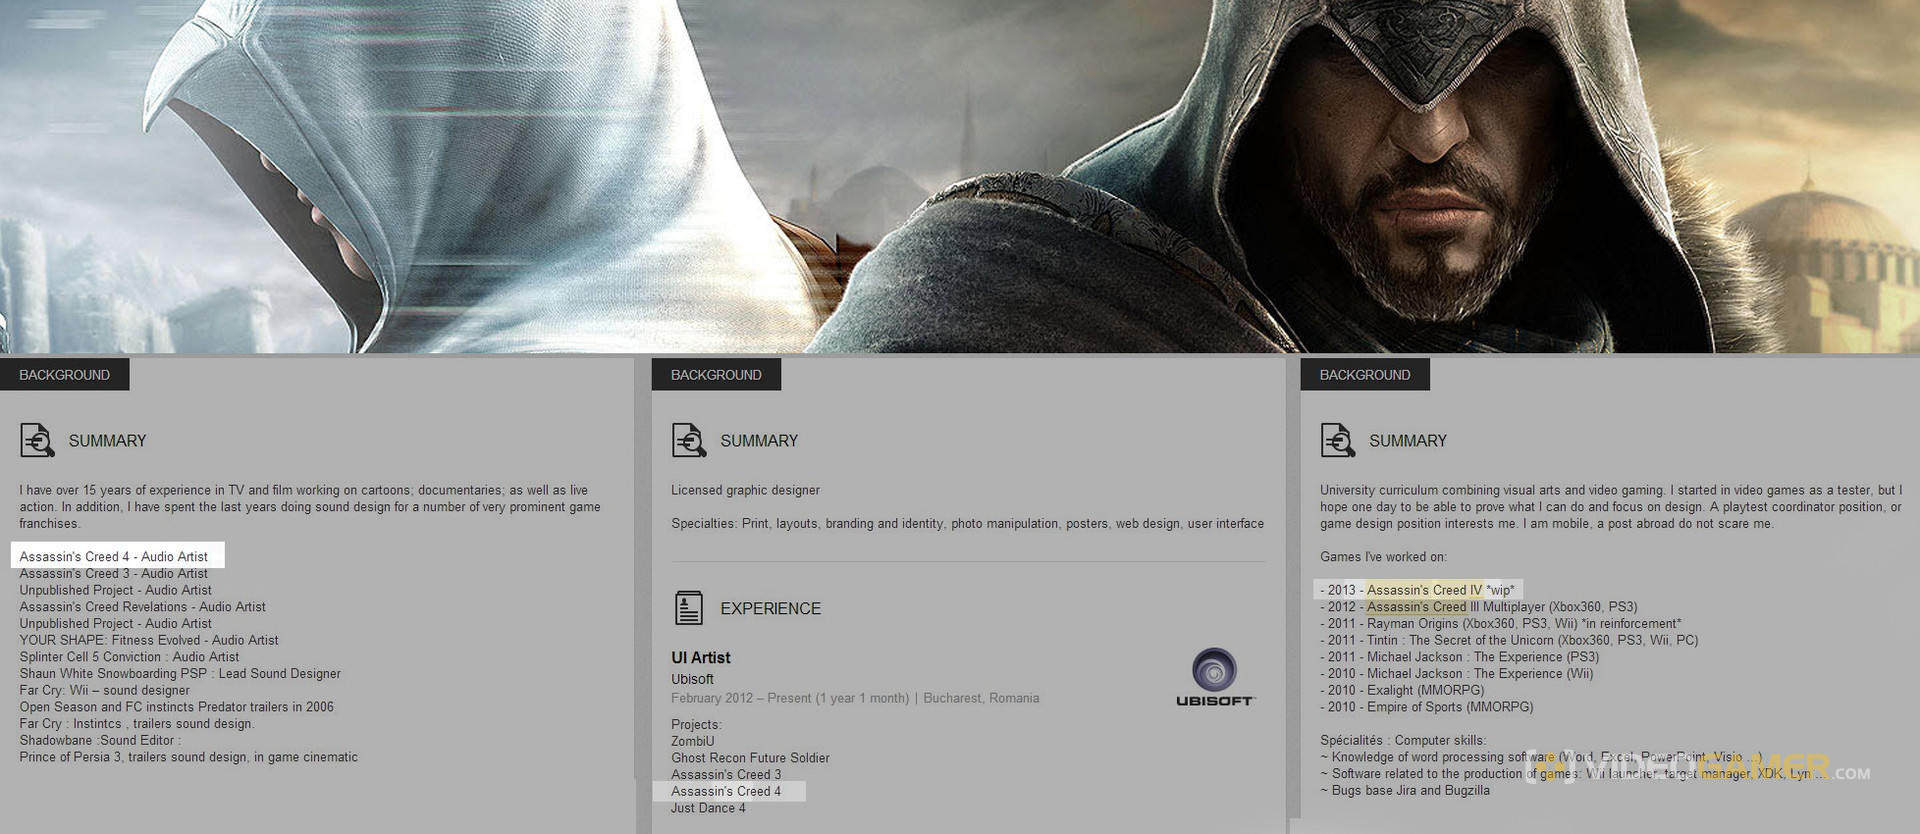 assassins_creed_4.jpg